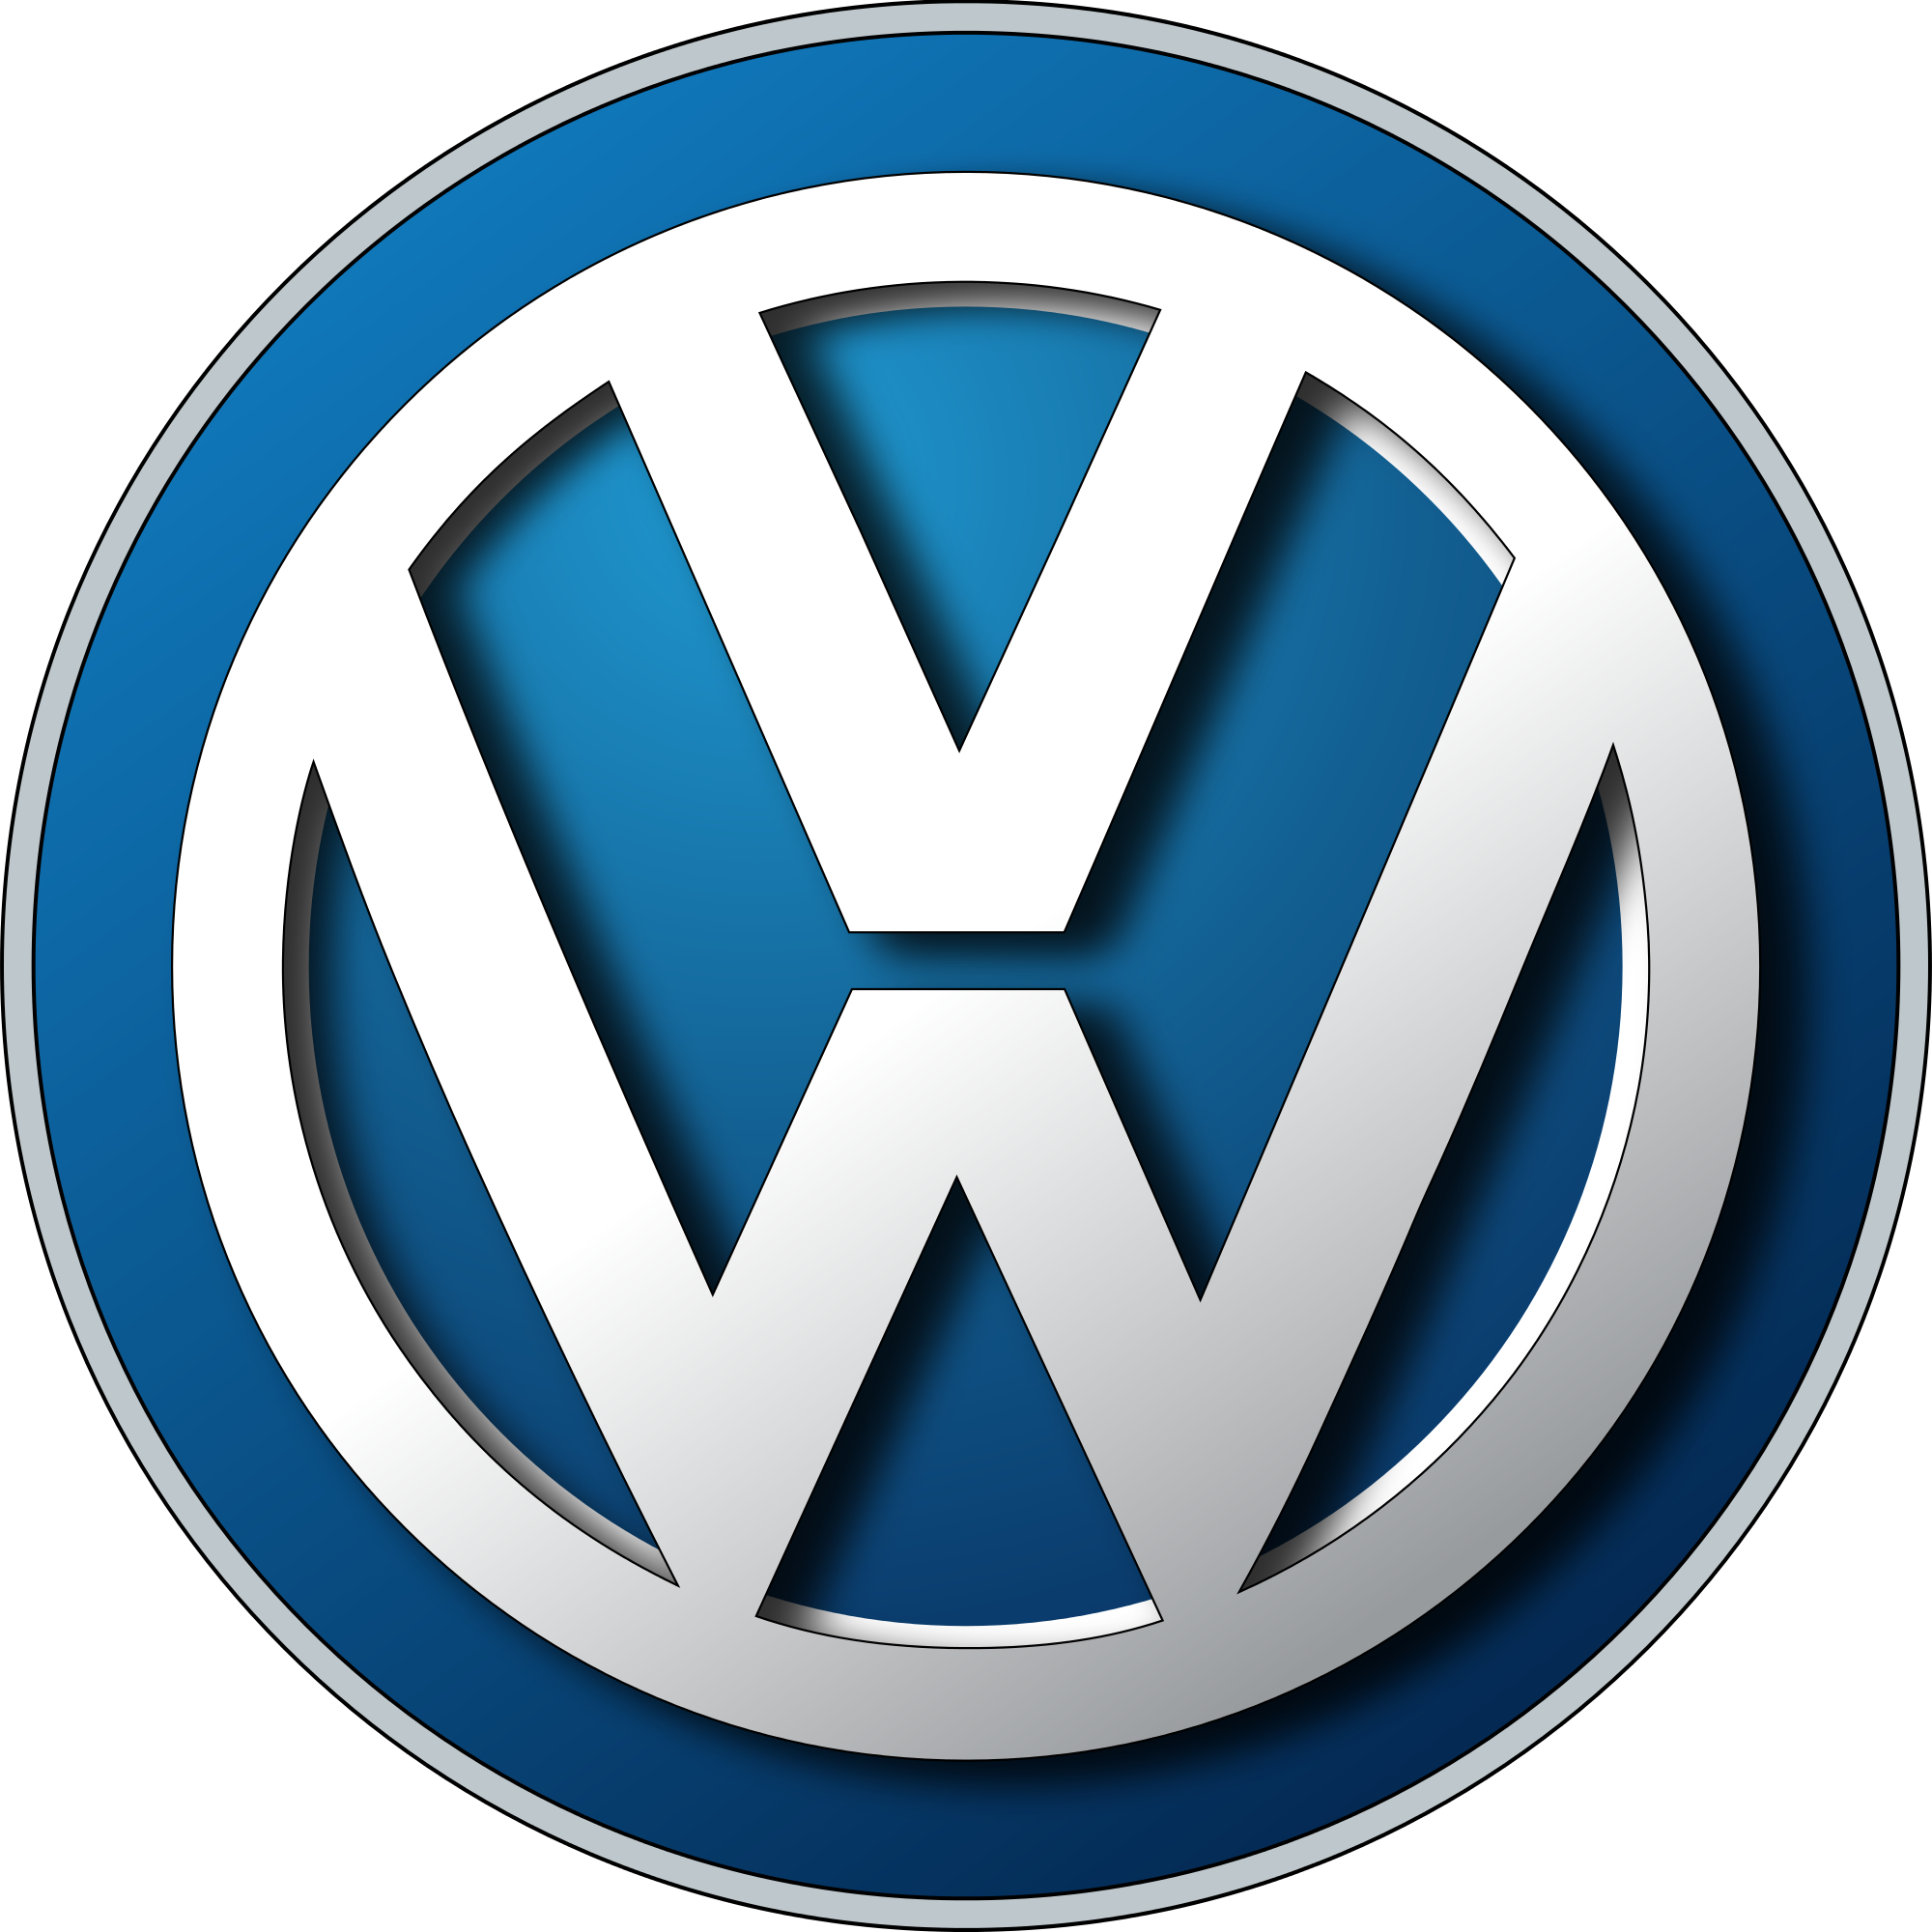 Companies And Their Logos Hannspree: German Car Brands, Companies And Manufacturers